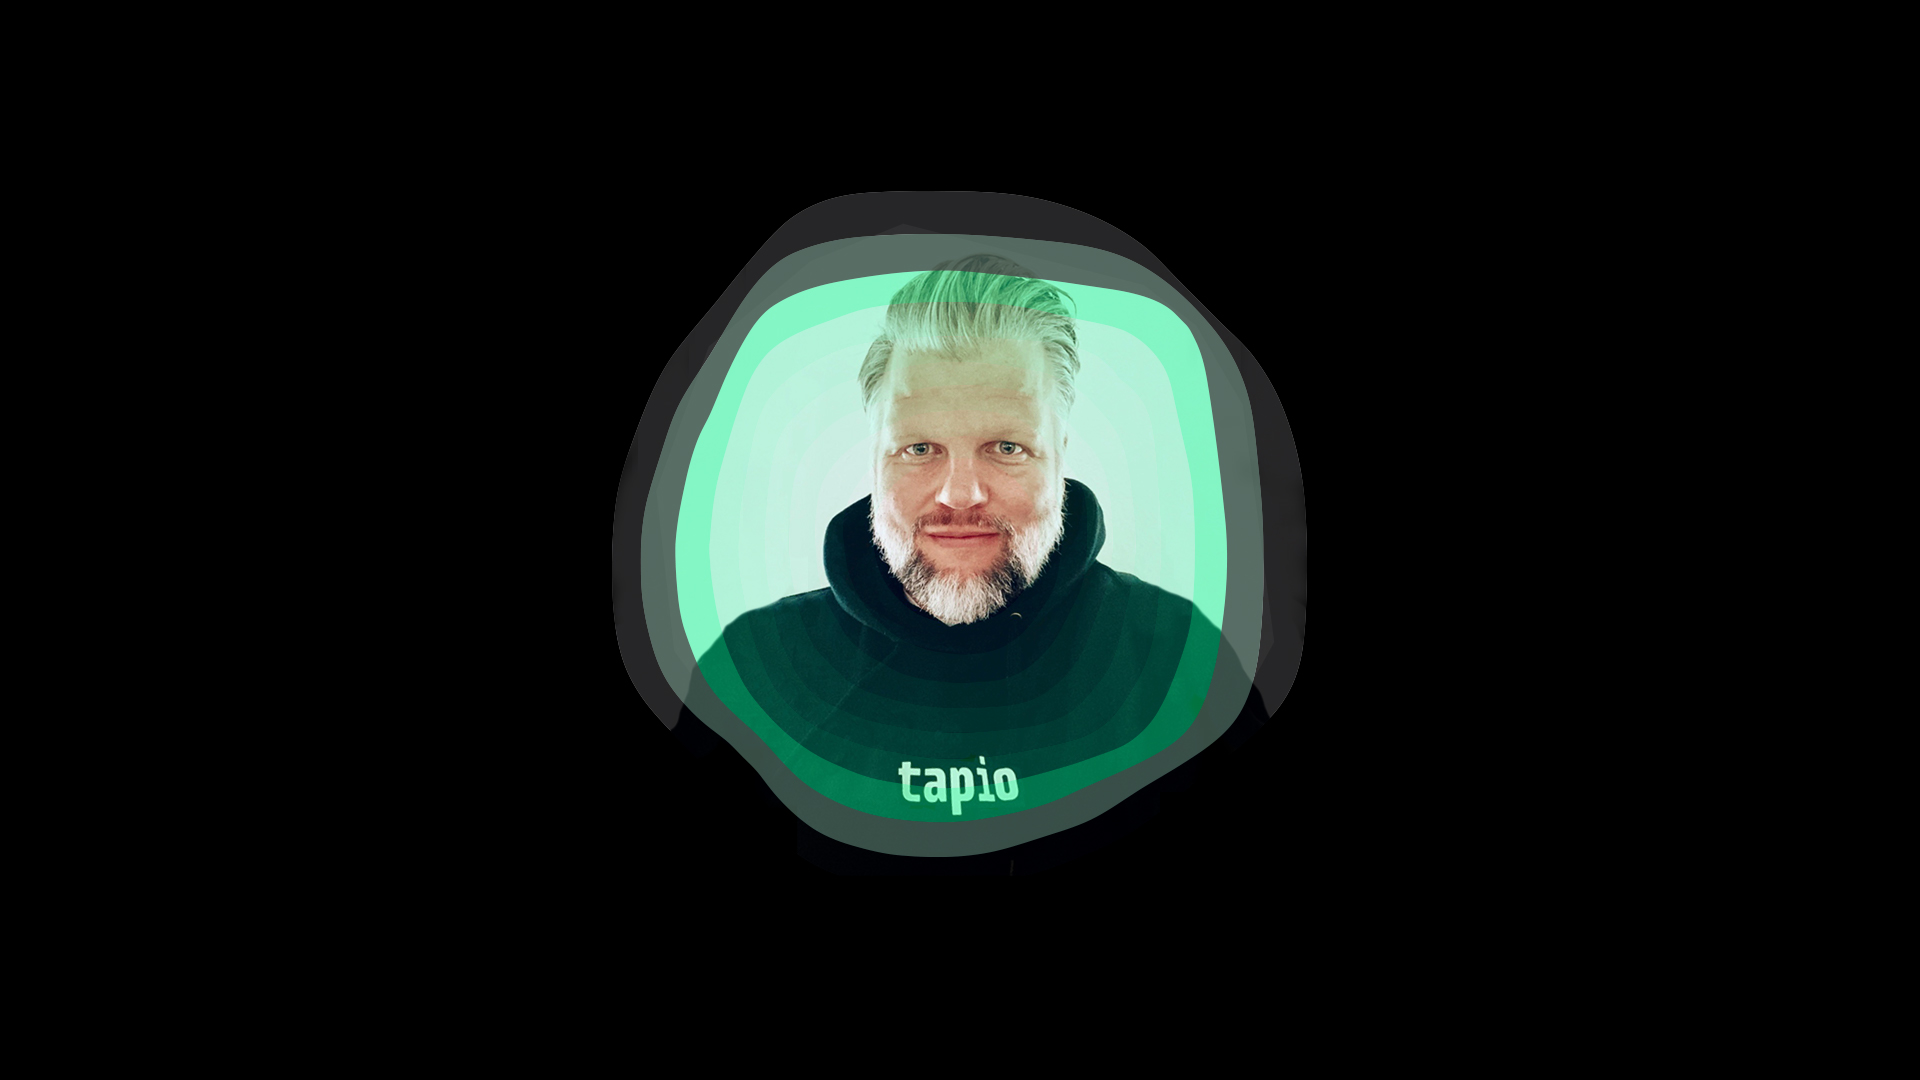 Jan-tapio-team-marketing-manager-product-manager-owner